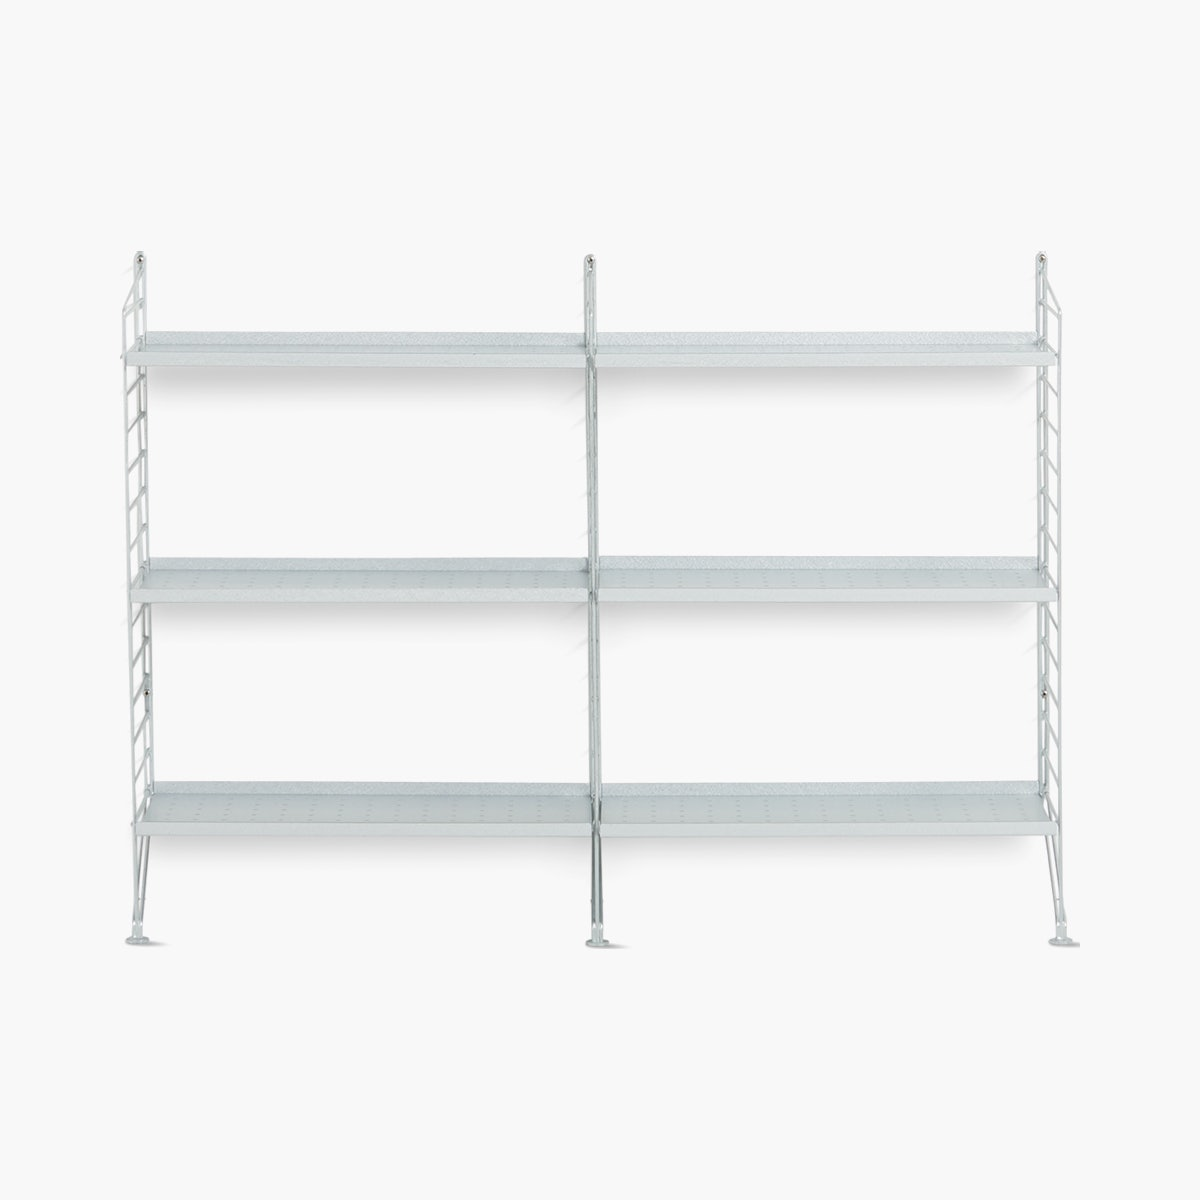 String Galvanized Floor Shelving